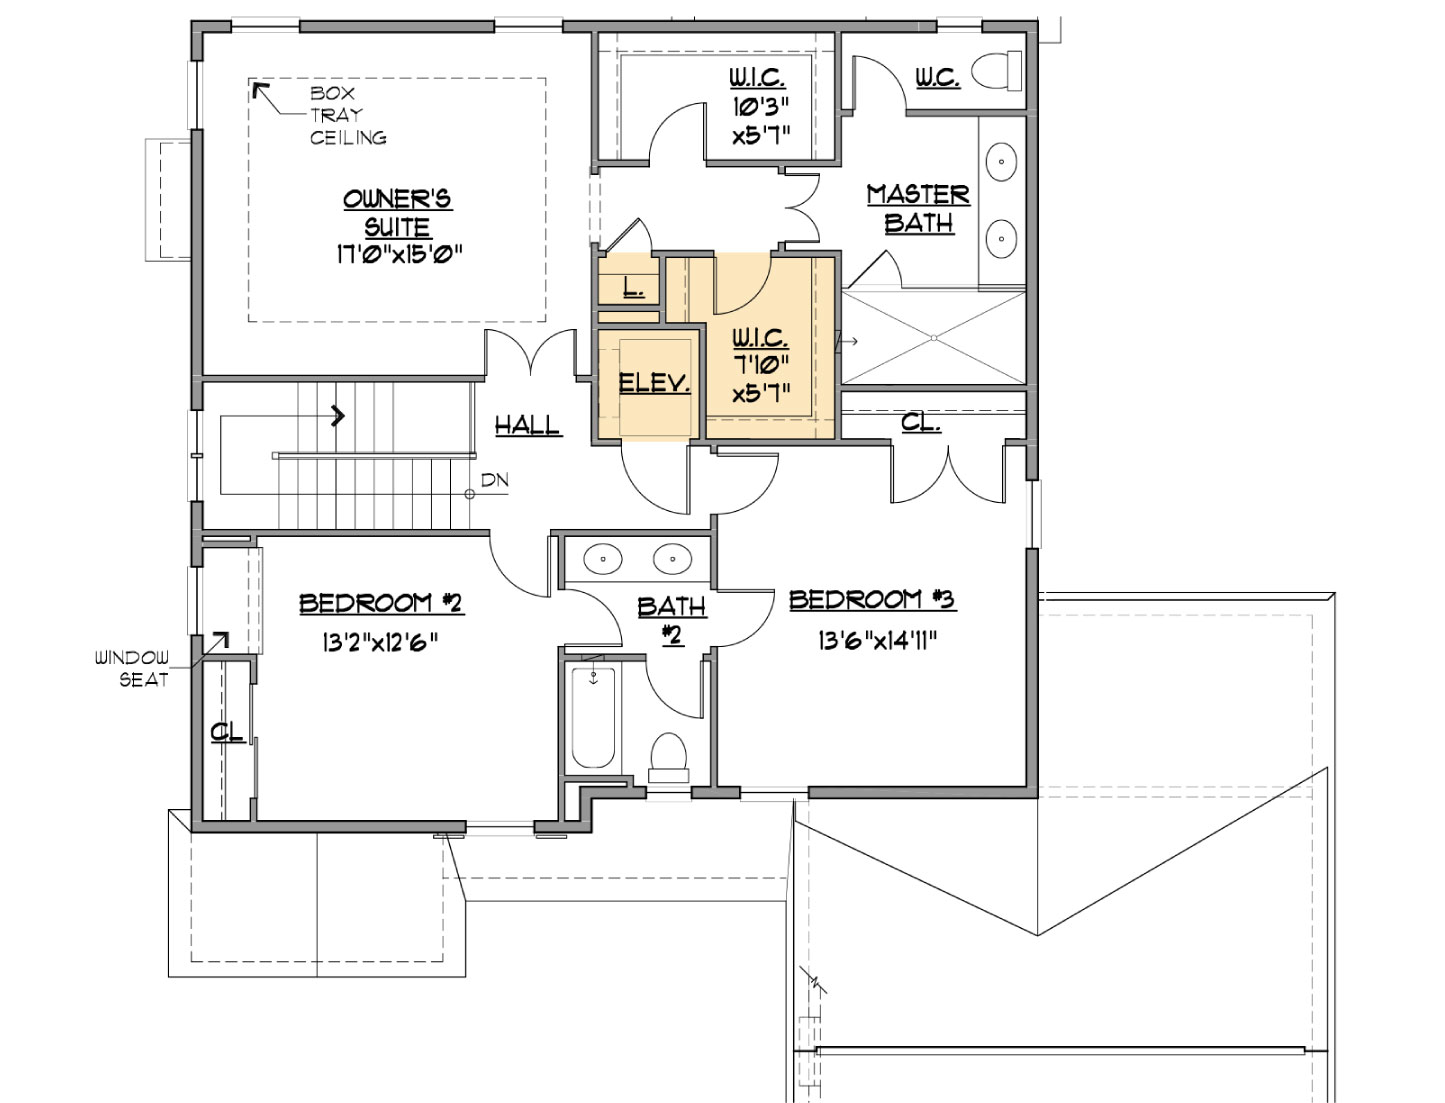 House Plans With Elevators as well Greenhouse Plans Now Available D463579c96ef44a3 in addition Georgetown Floor Plan besides Floorplan moreover Toterhome Floor Plans. on luxury motorhome floor plans